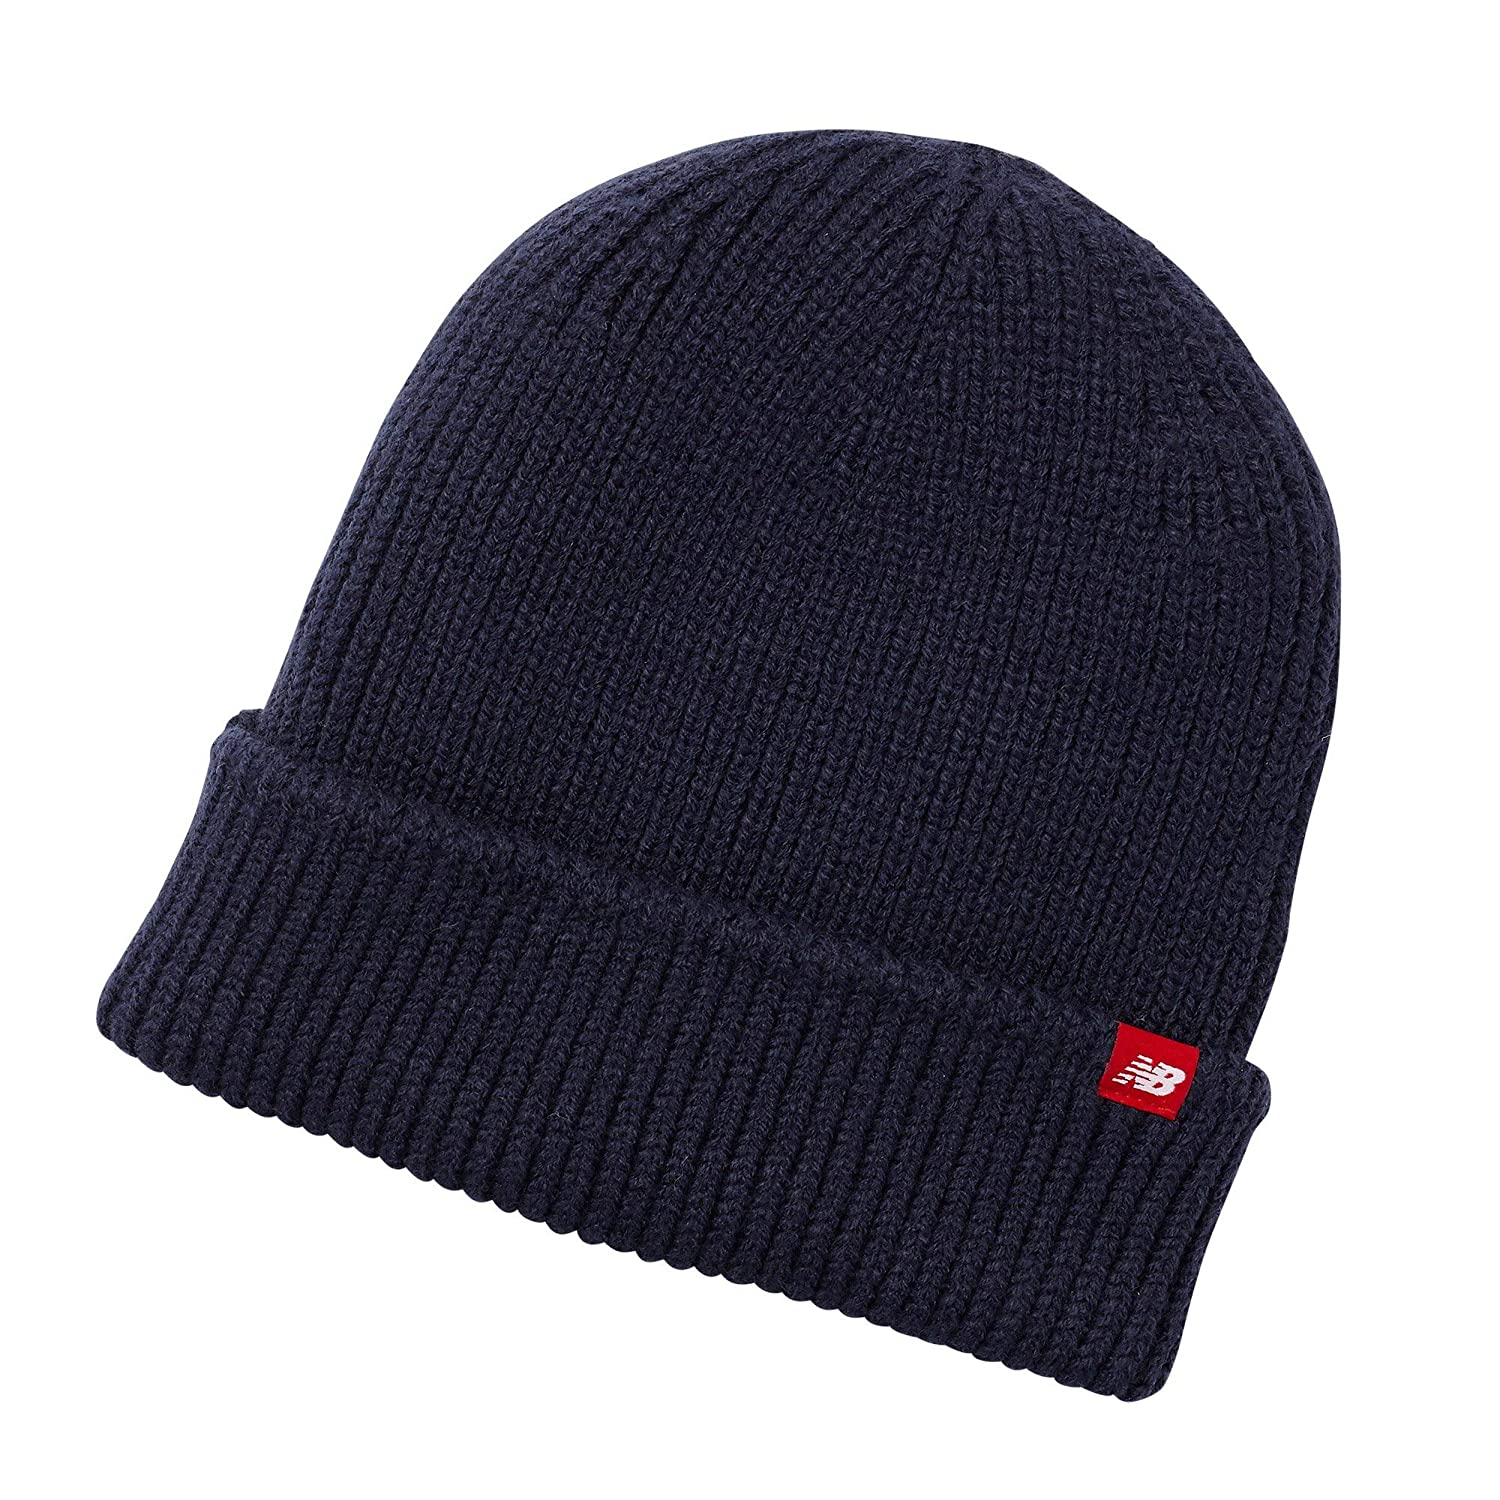 New Balance Watchmans Winter Knit Beanie: Amazon.es: Deportes y ...